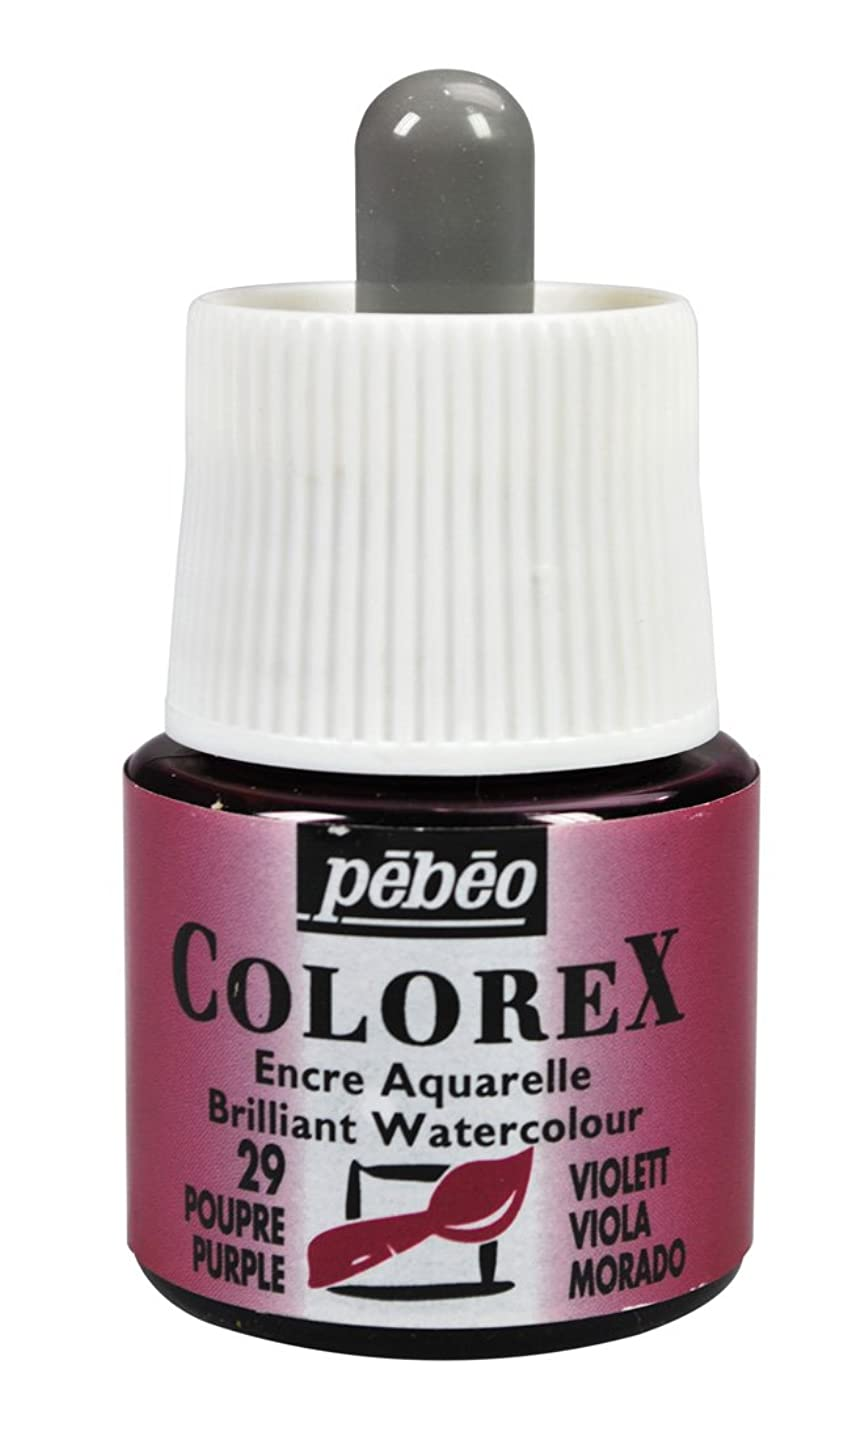 Pebeo Colorex, Watercolor Ink, 45 ml Bottle with Dropper - Purple